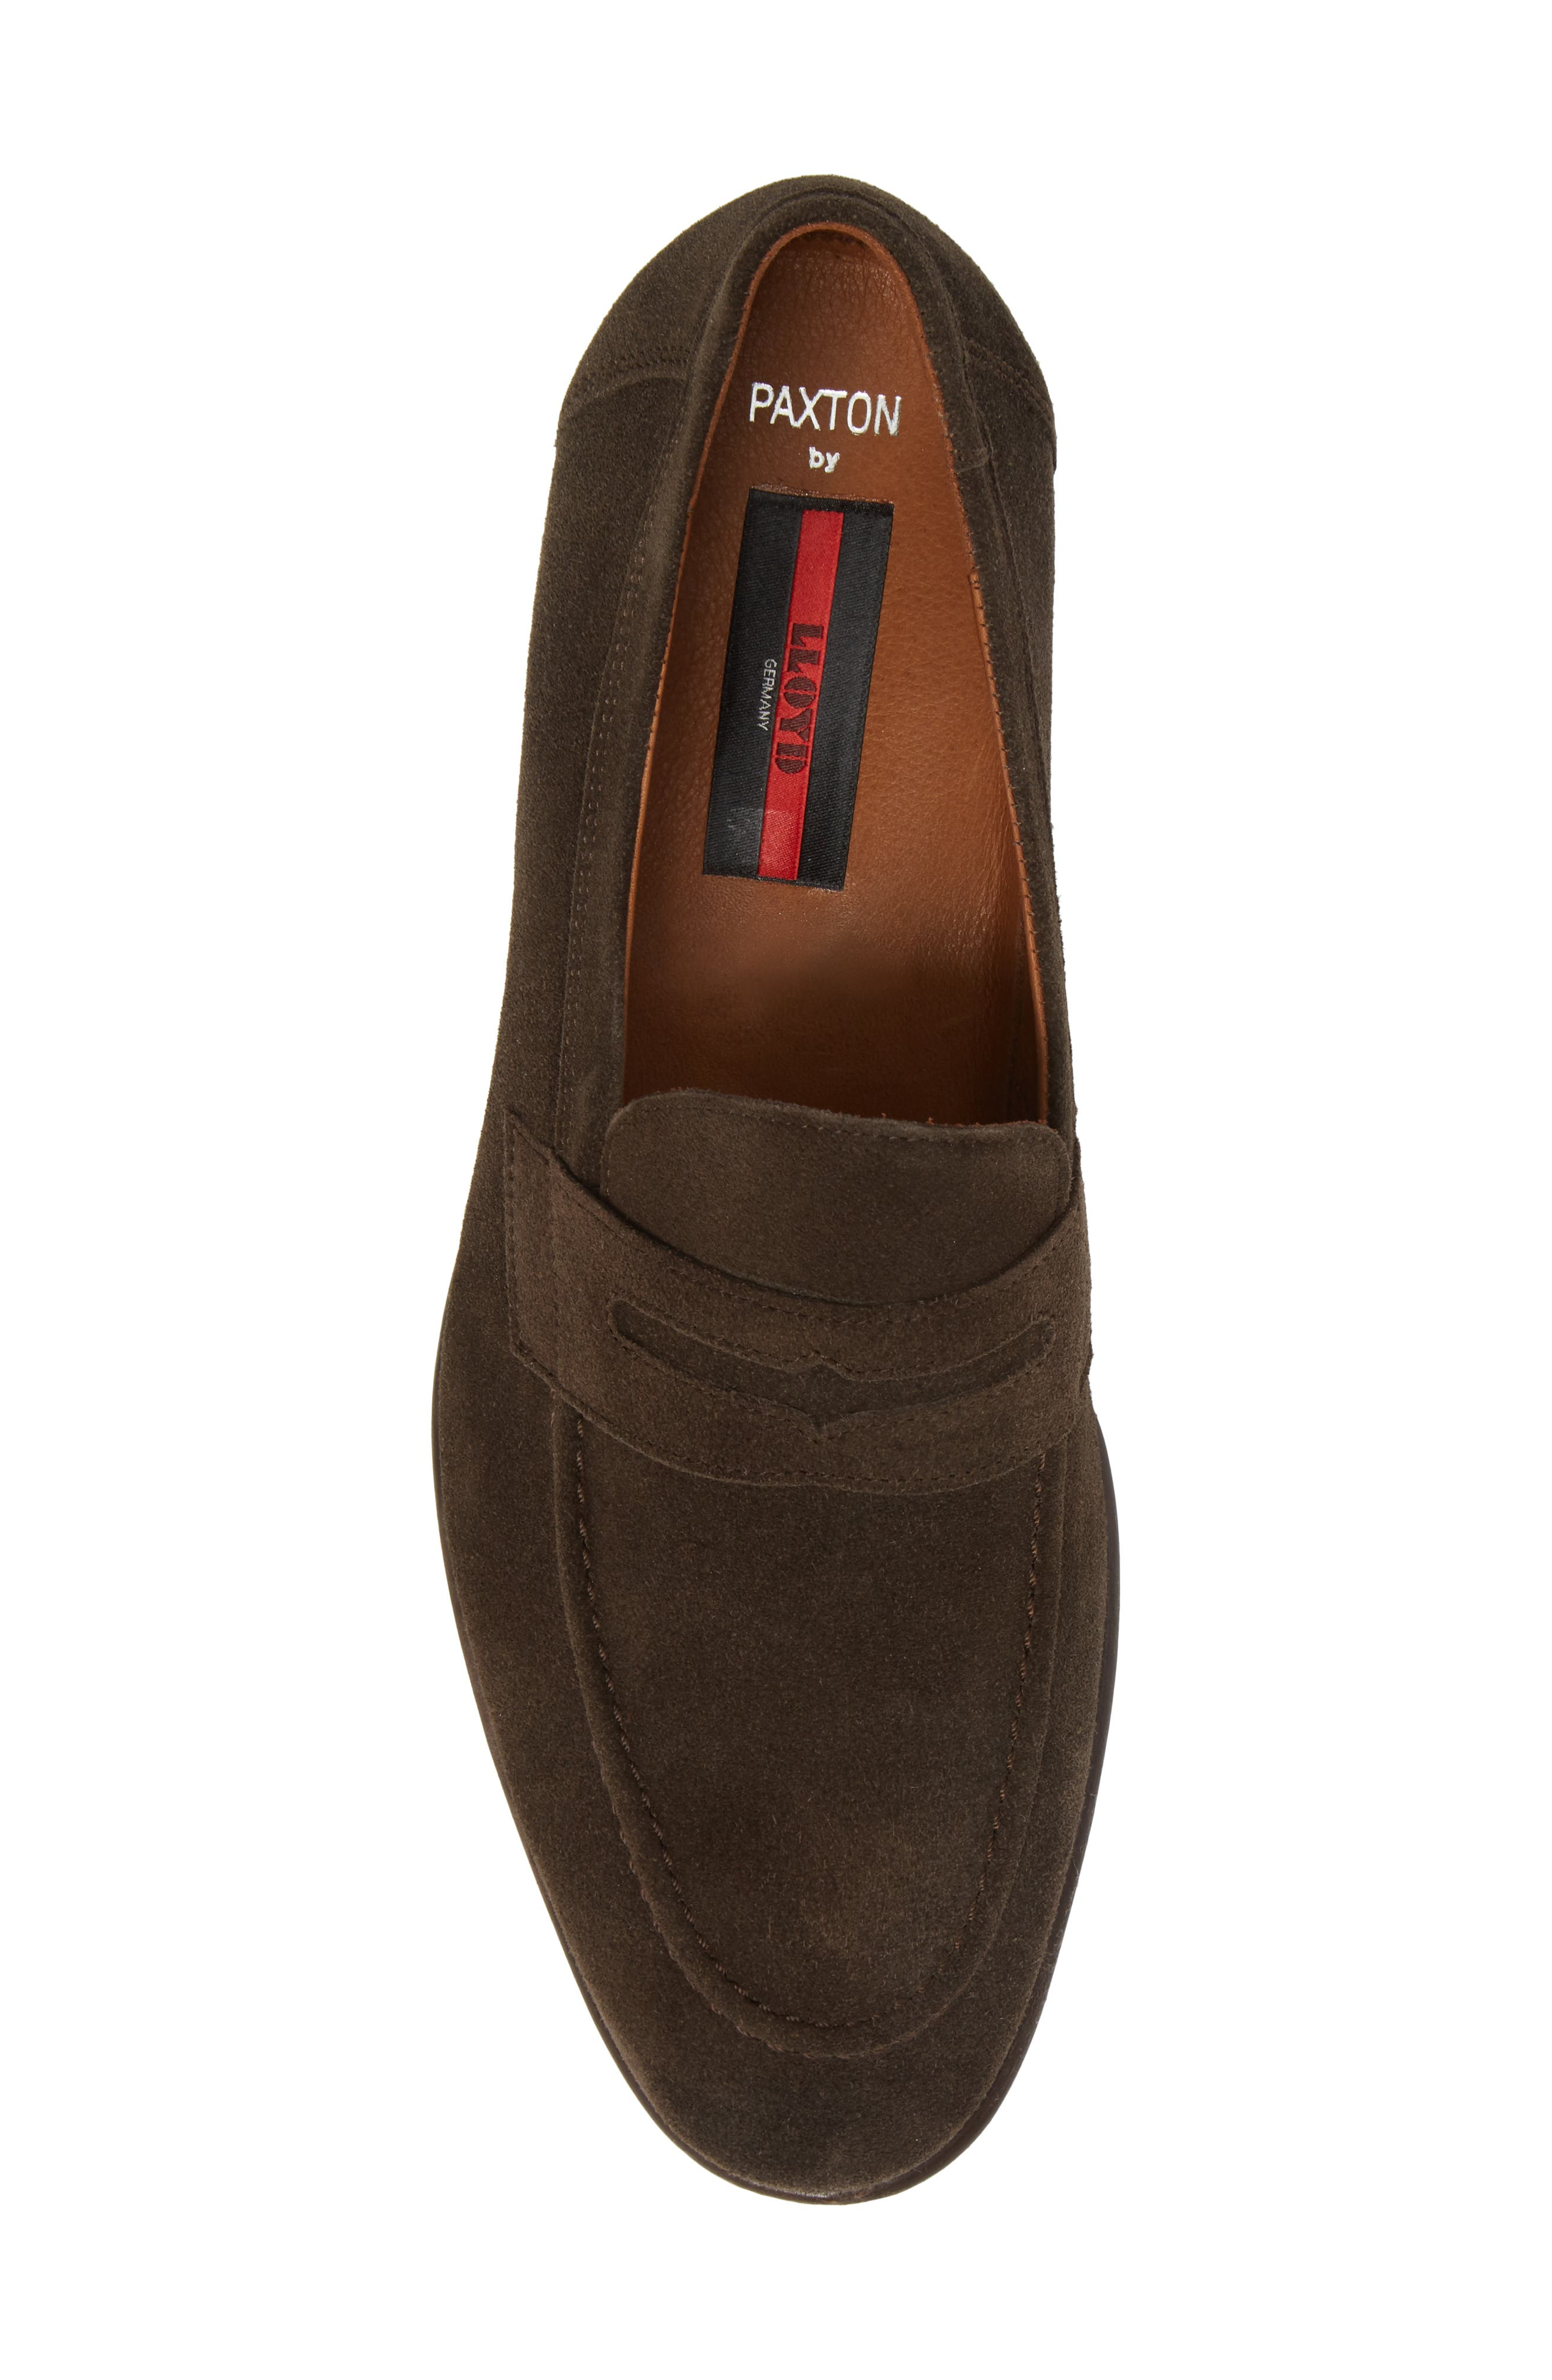 Paxton Penny Loafer,                             Alternate thumbnail 5, color,                             Brown Suede